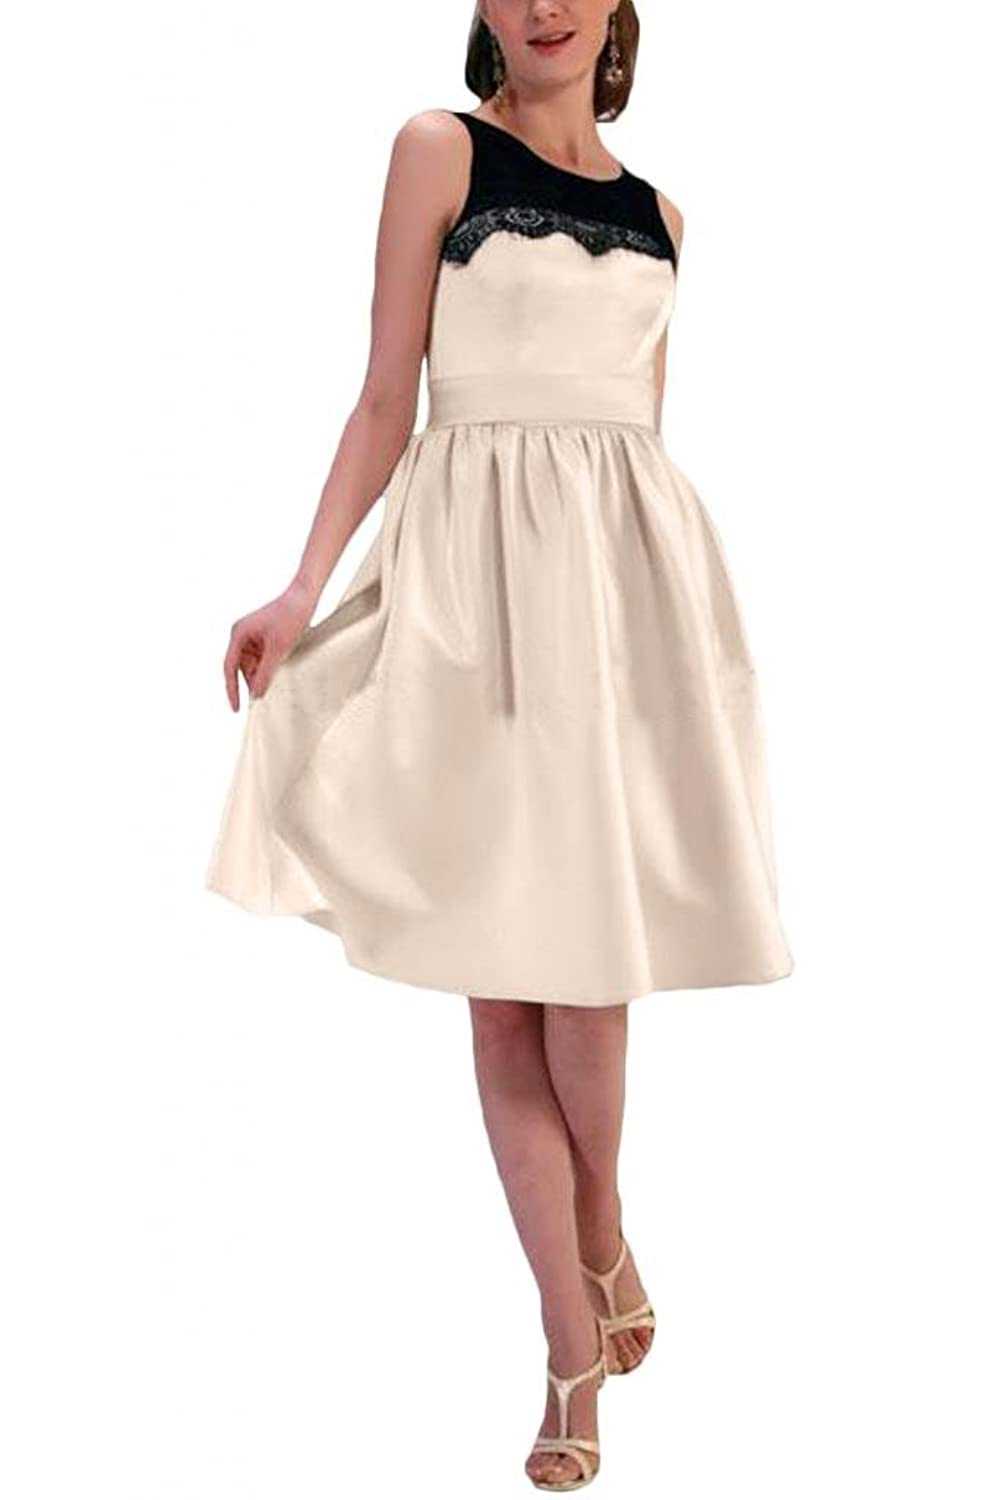 Gorgeous Bride Women's Short Formal Dress Sleeveless Satin and Lace